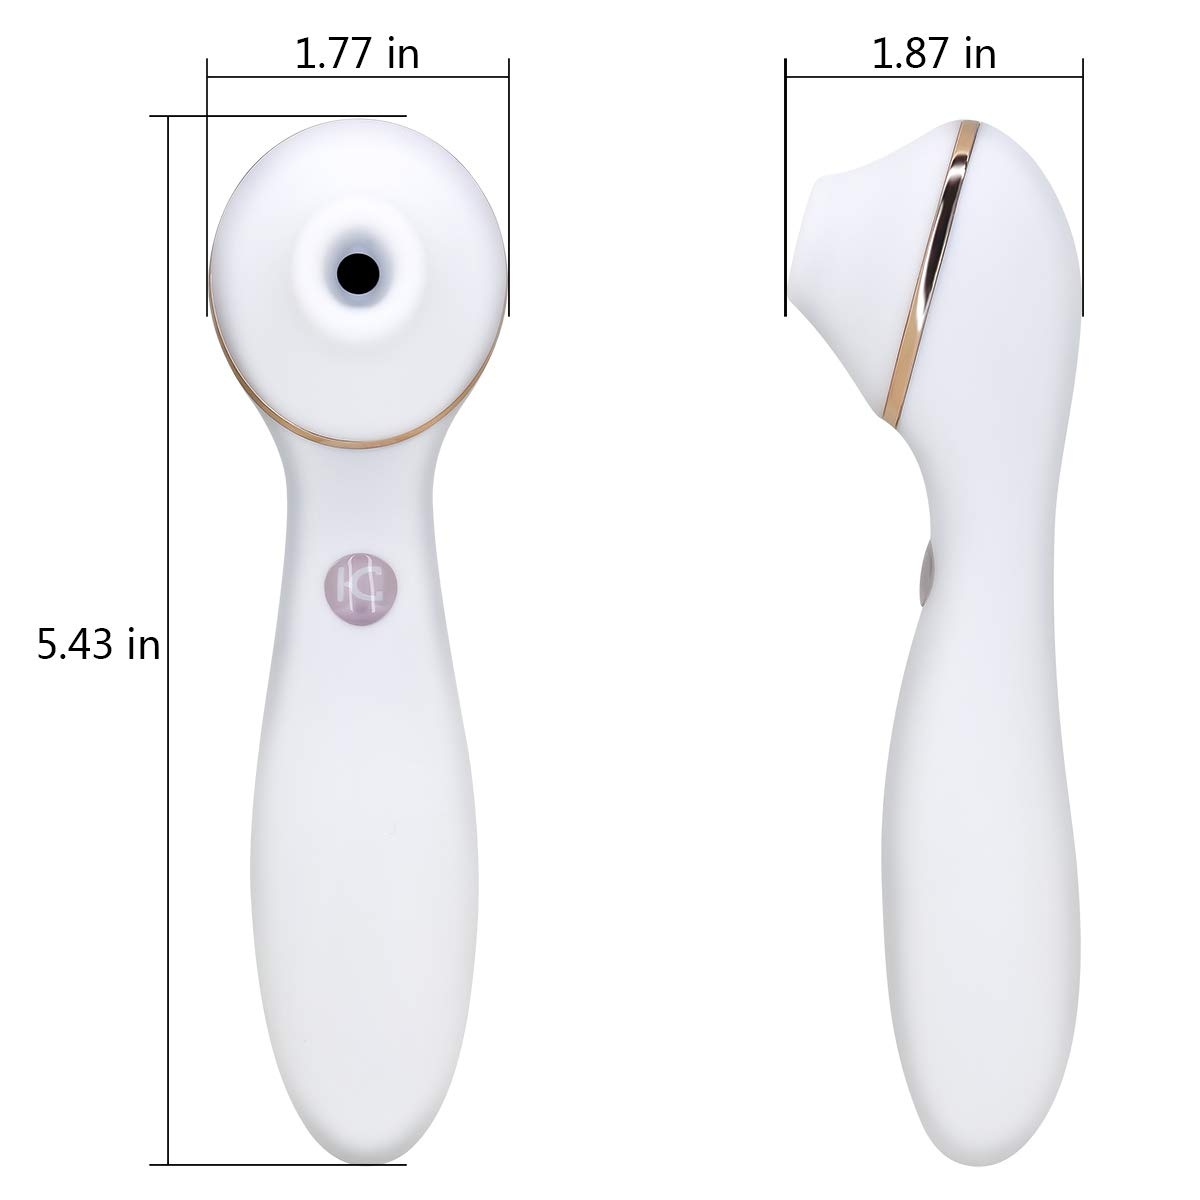 Clit Sucking Vibrator Dildo Sex Toy Personal Clitoral Stimulator G Spot with Suction & Vibration Orgasm for Women